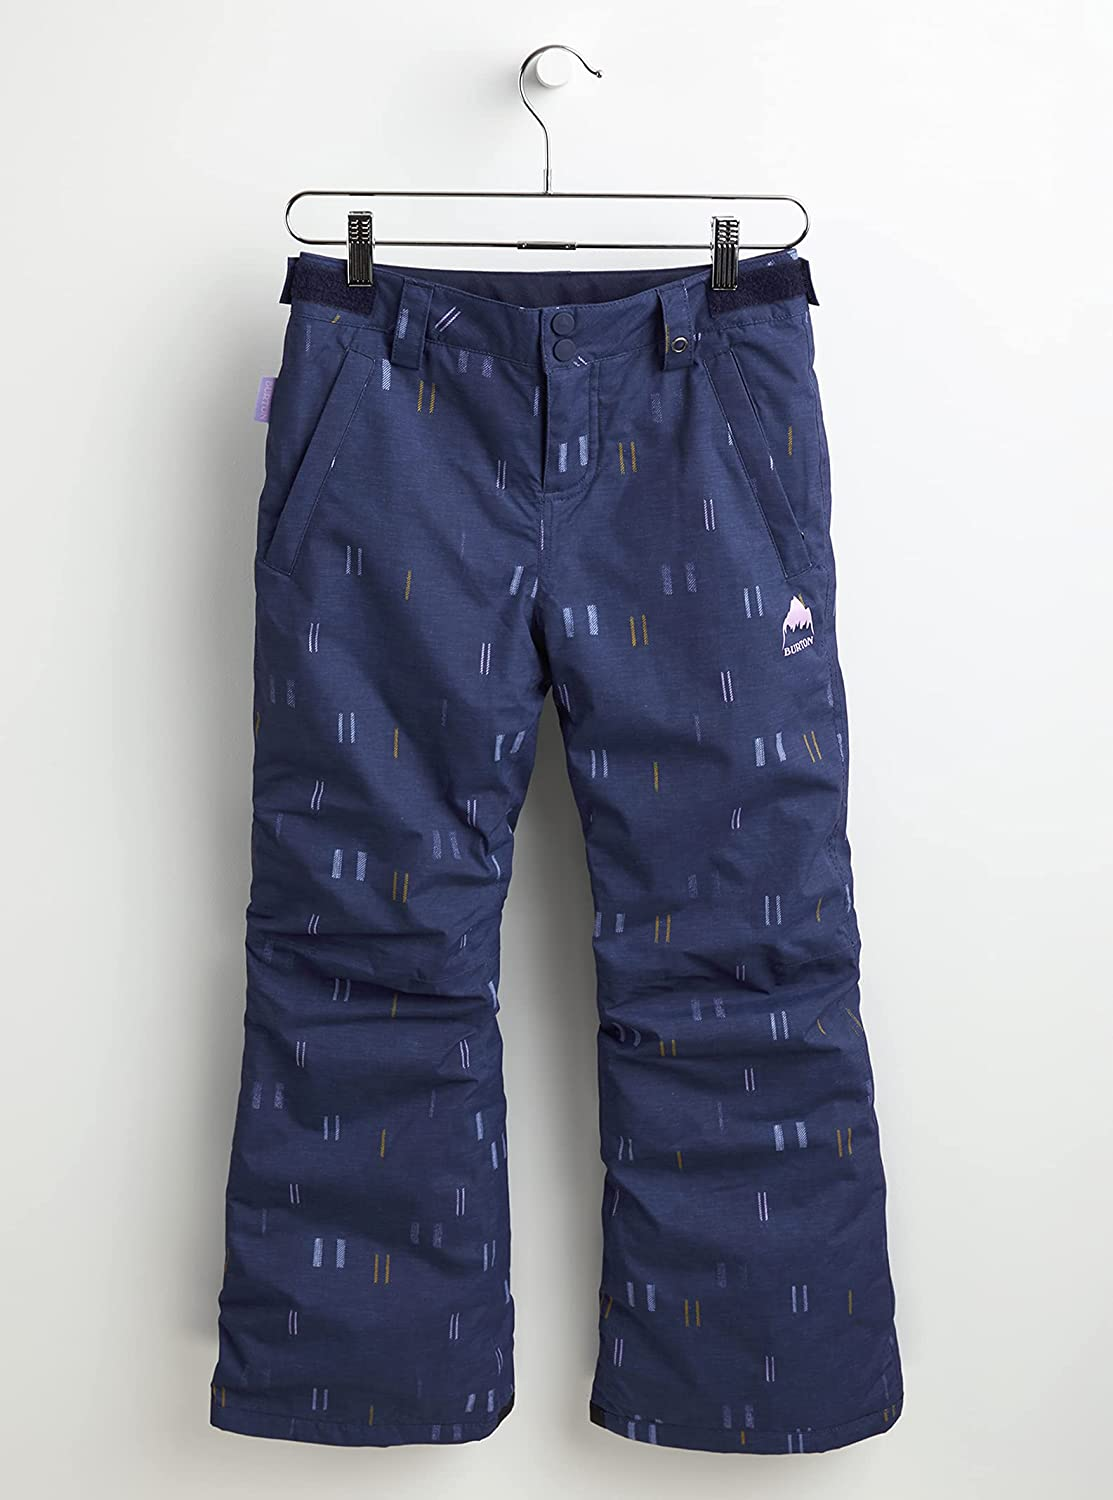 Burton New product! New type Girls' Cargo Seattle Mall Multicolor Small